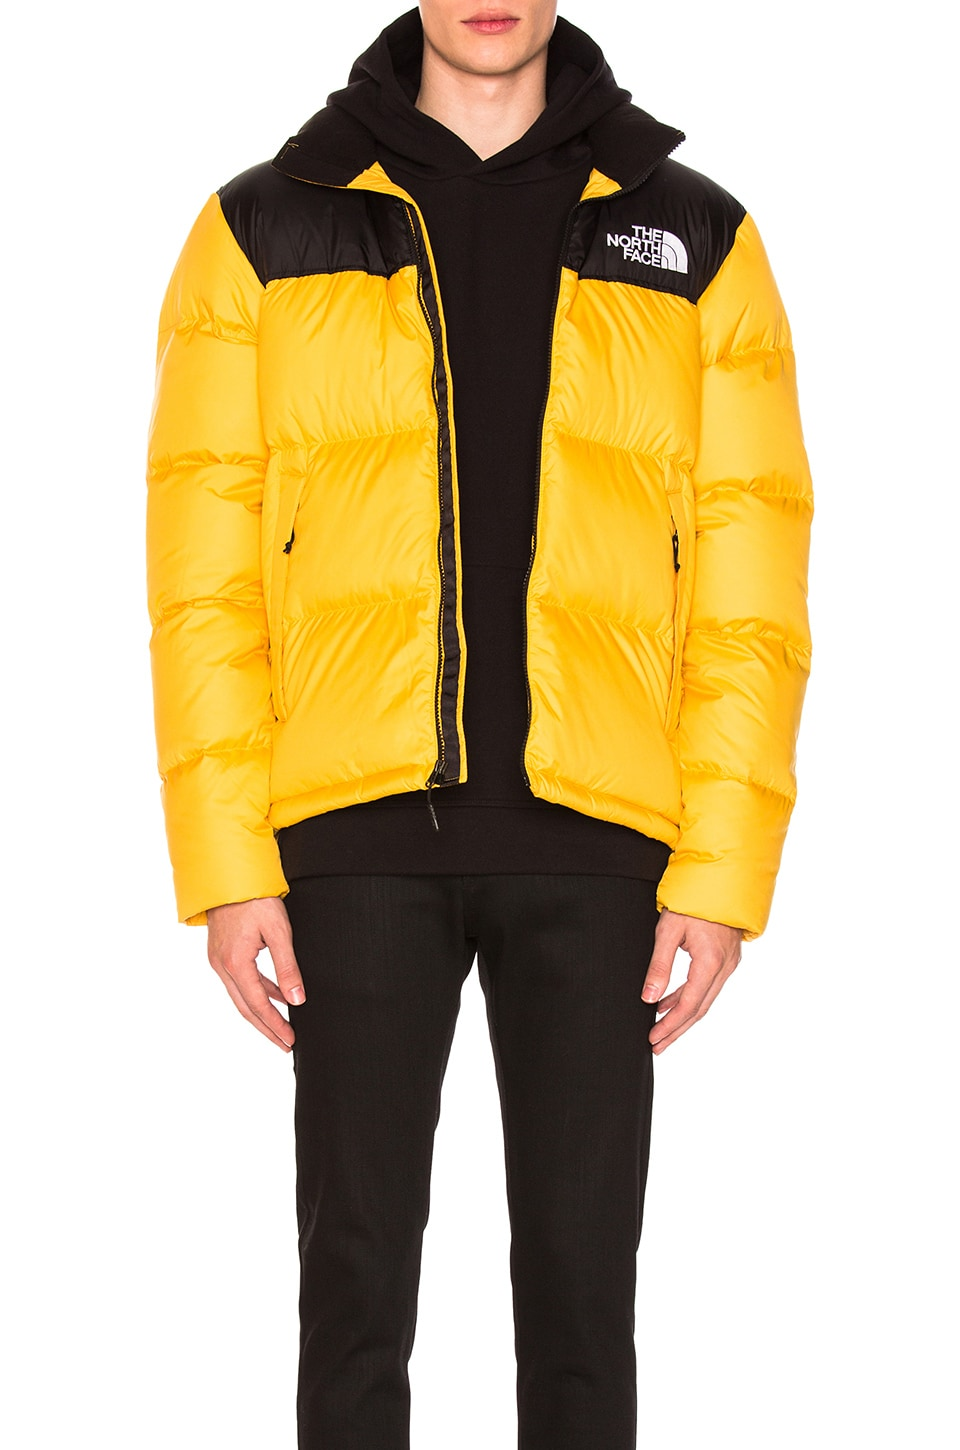 3d84a2bfc The North Face Novelty Nuptse Jacket in TNF Yellow | REVOLVE